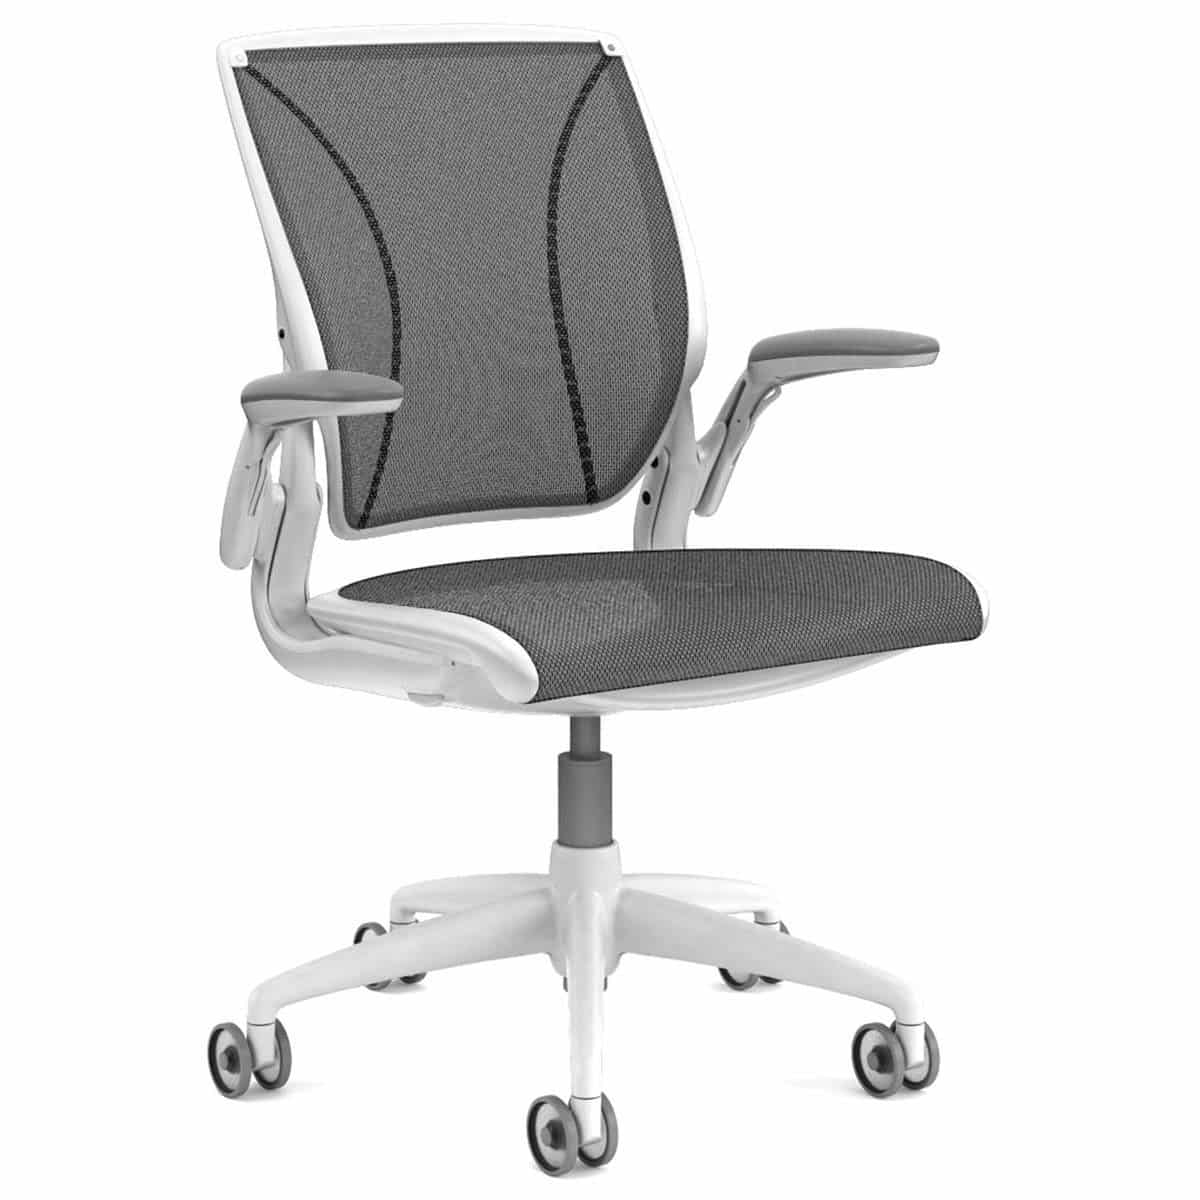 HumanScale Diffirent World Chair